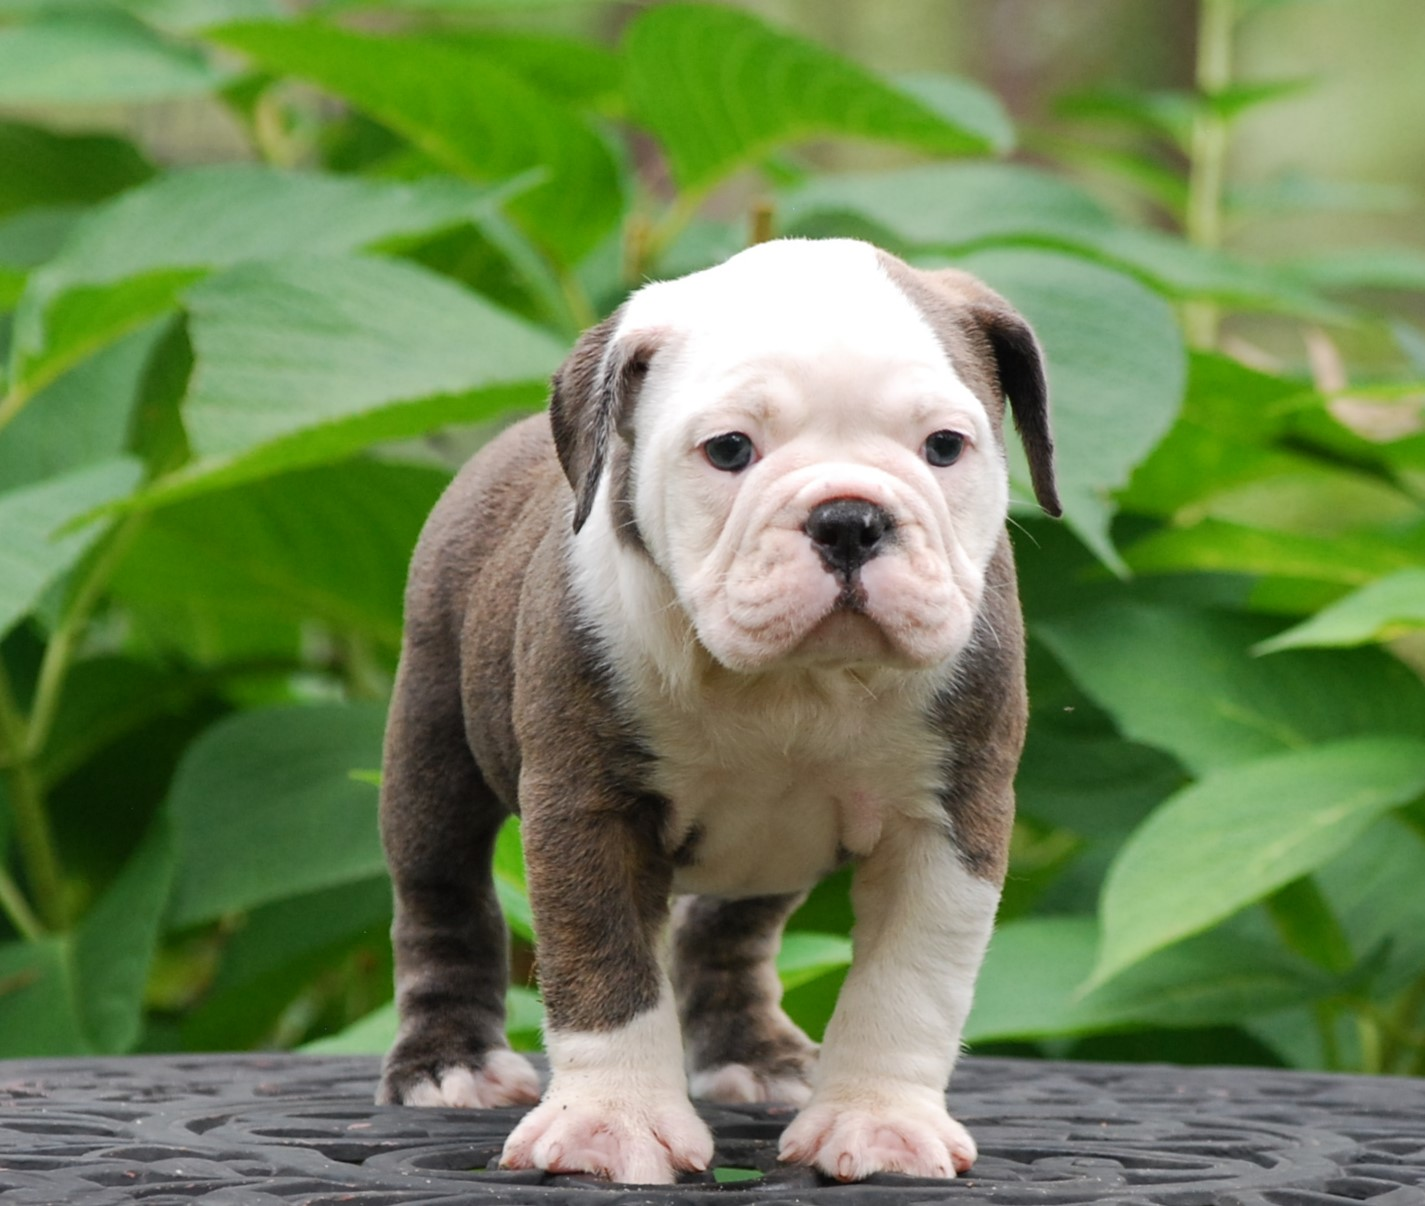 Laffy Taffy Olde English Bulldogge Puppy For Sale | Photo 5